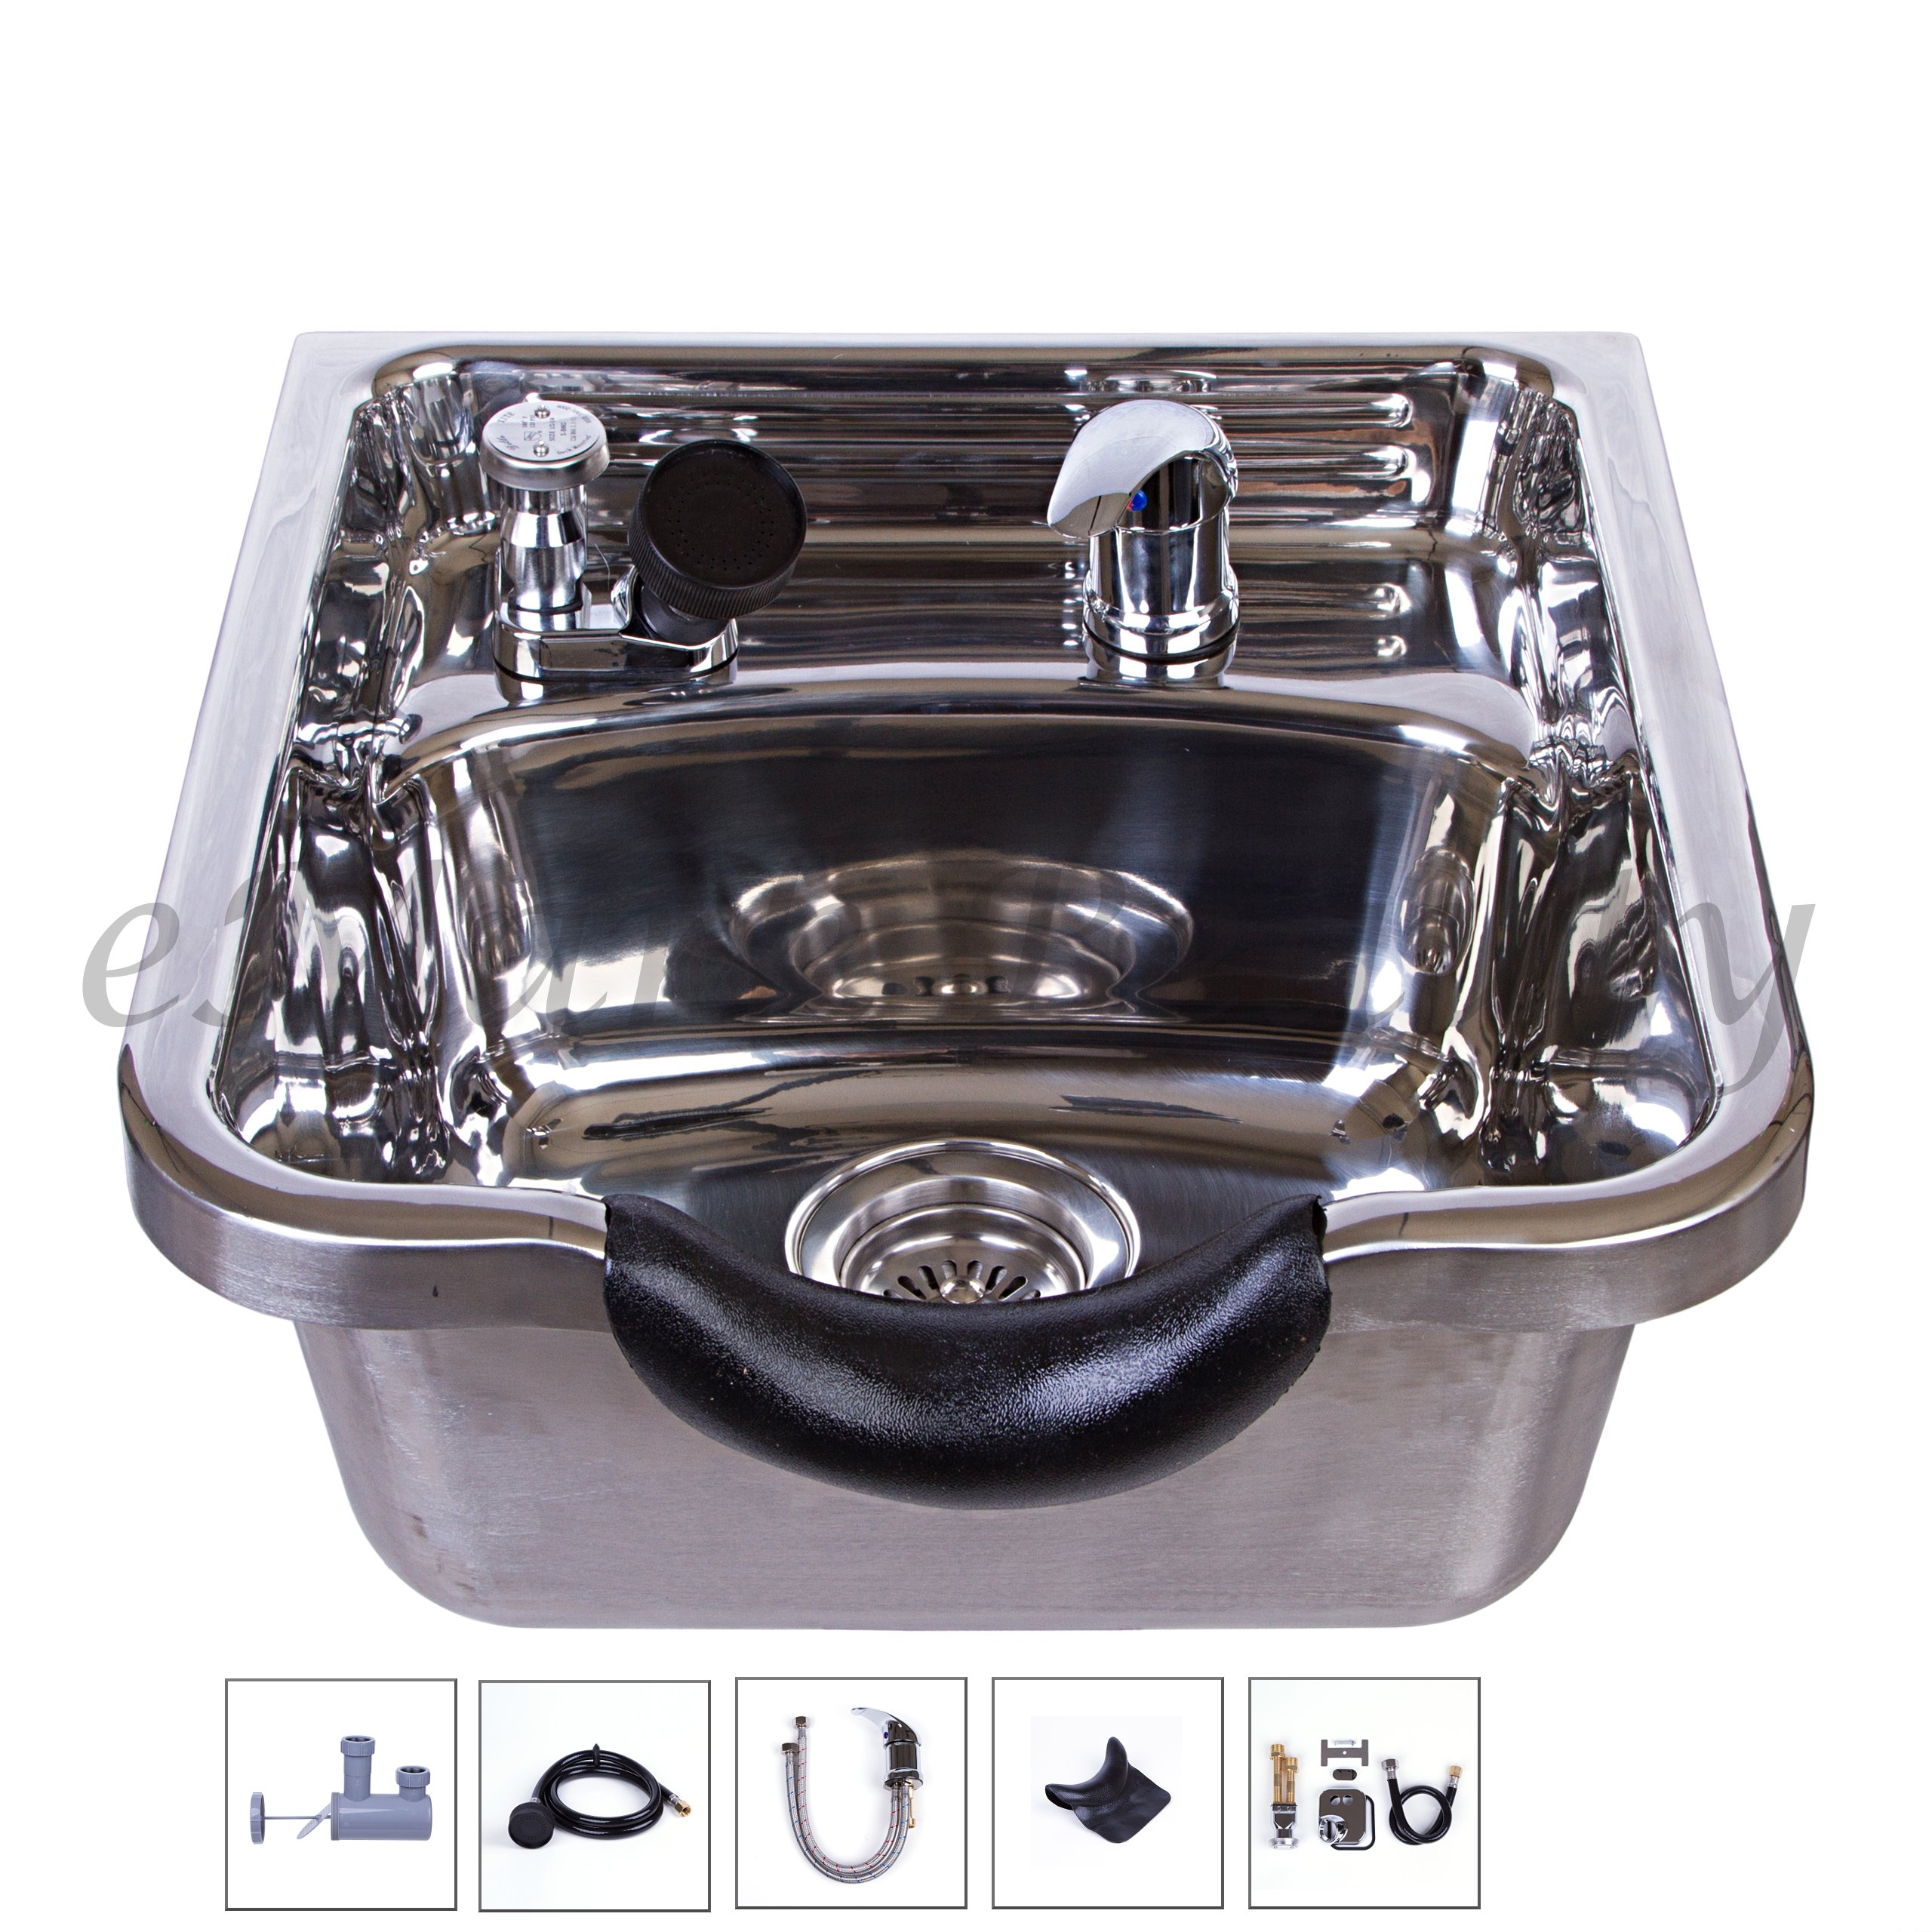 Stainless Steel Shampoo Bowl Shampoo Sink Barber Beauty Salon Polished TLC-1168 by eMark Beauty (Image #1)